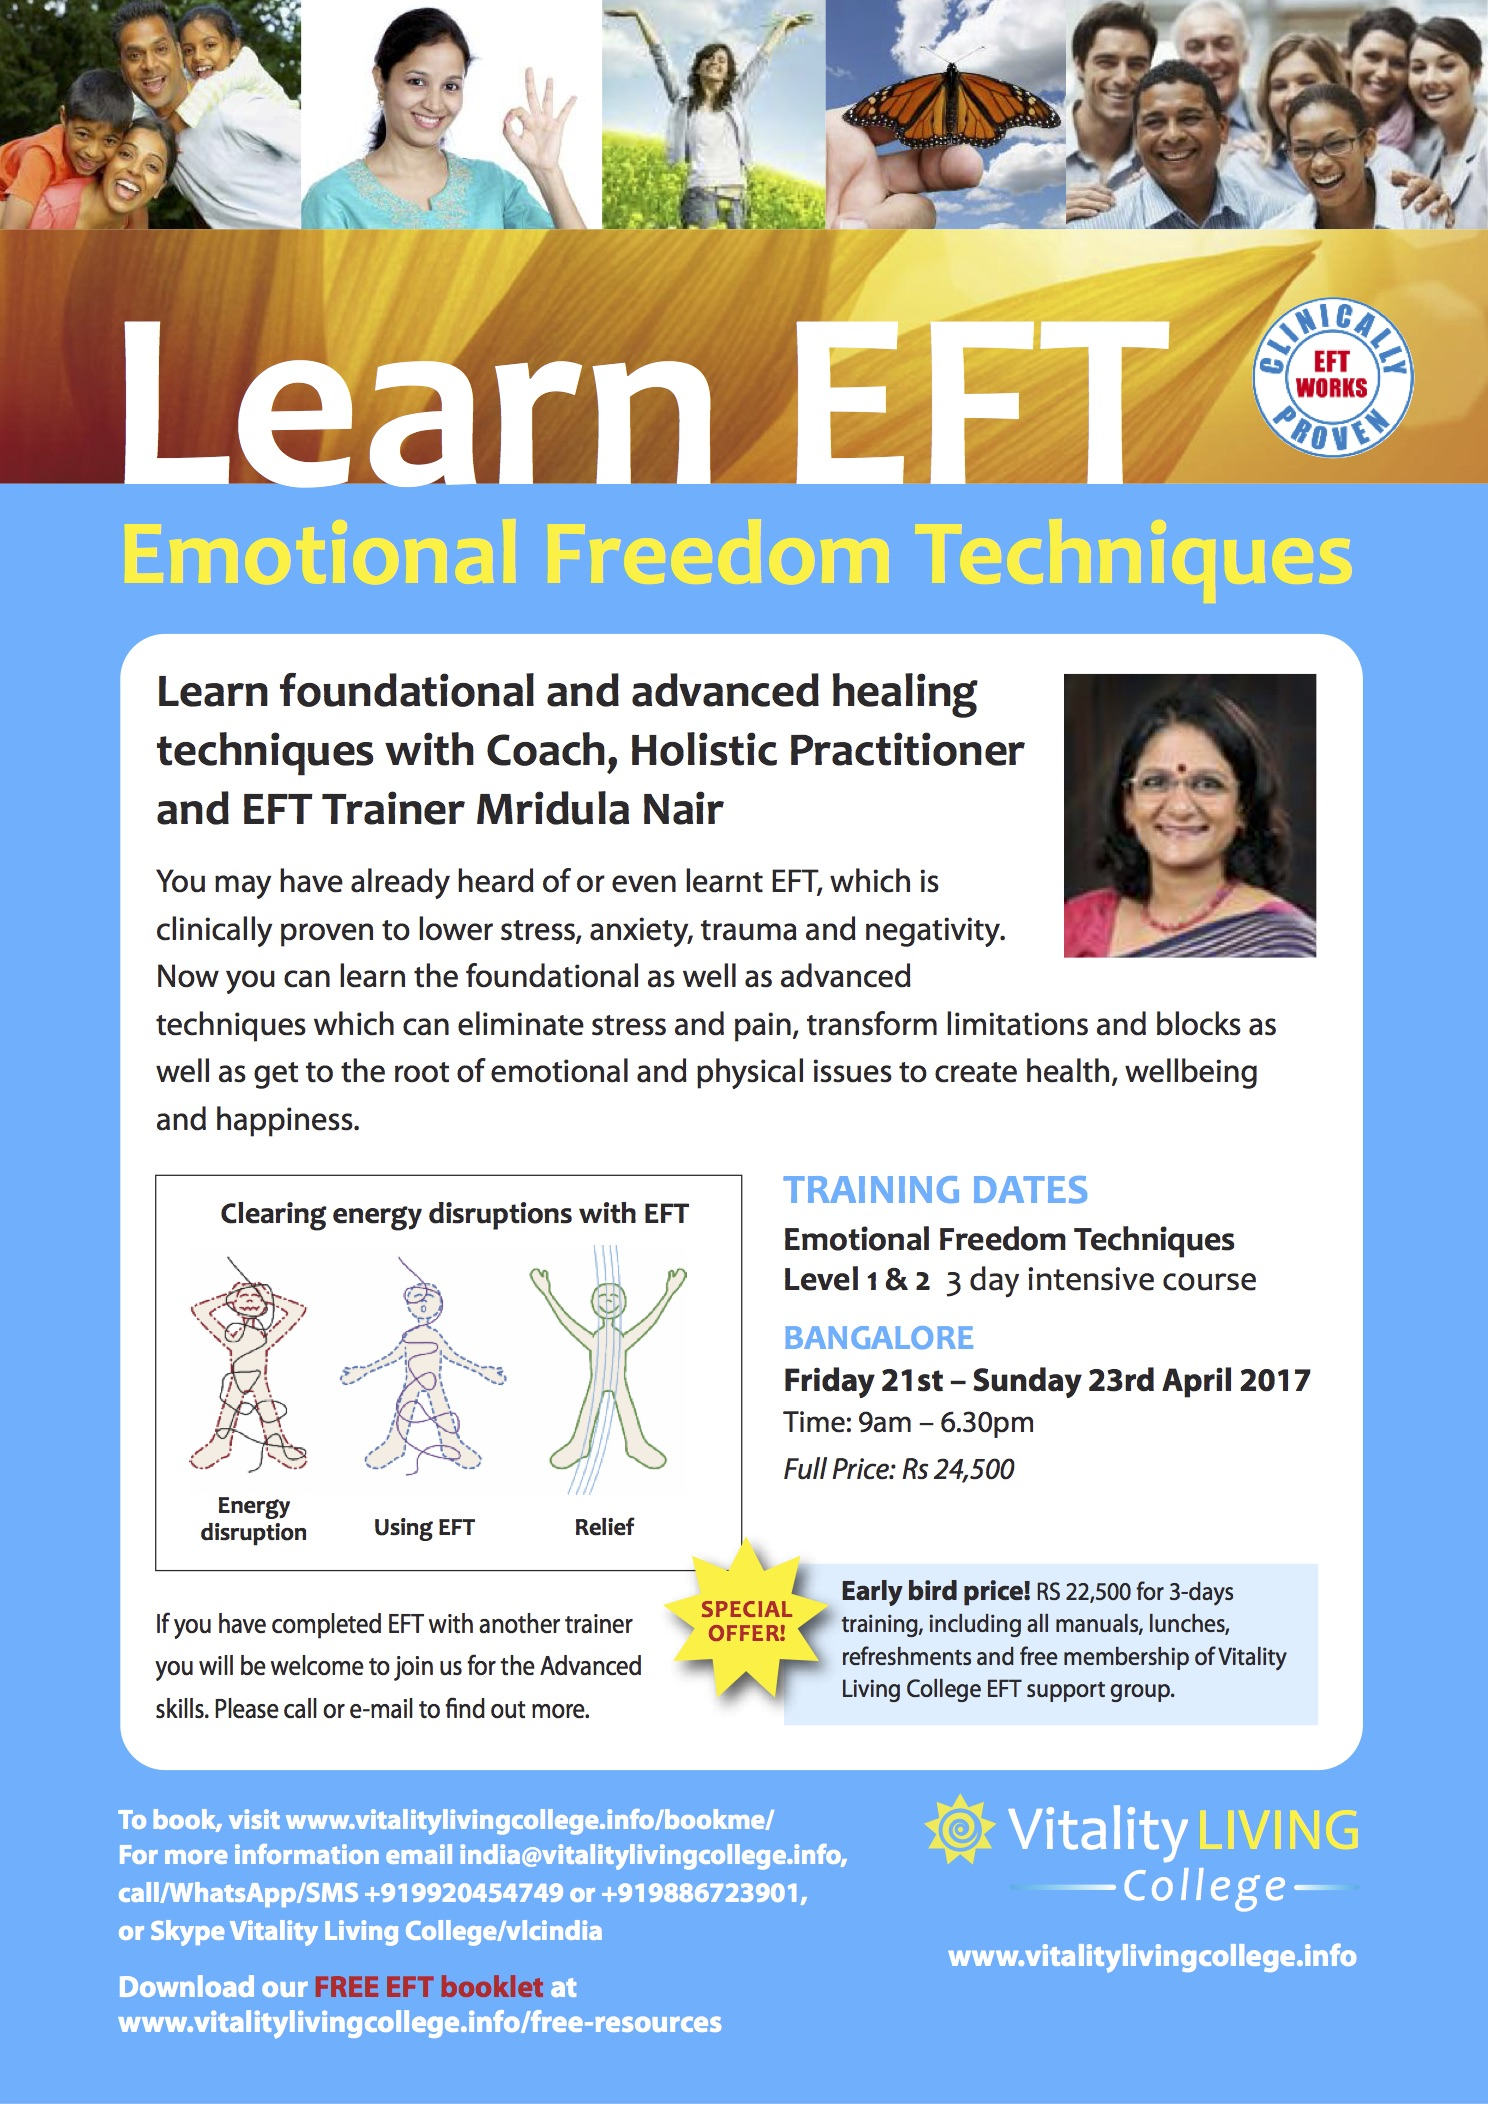 Emotional Freedom Techniques (EFT) Bangalore April 2017 with Vitality Living College Accredited Trainer Mridula Nair